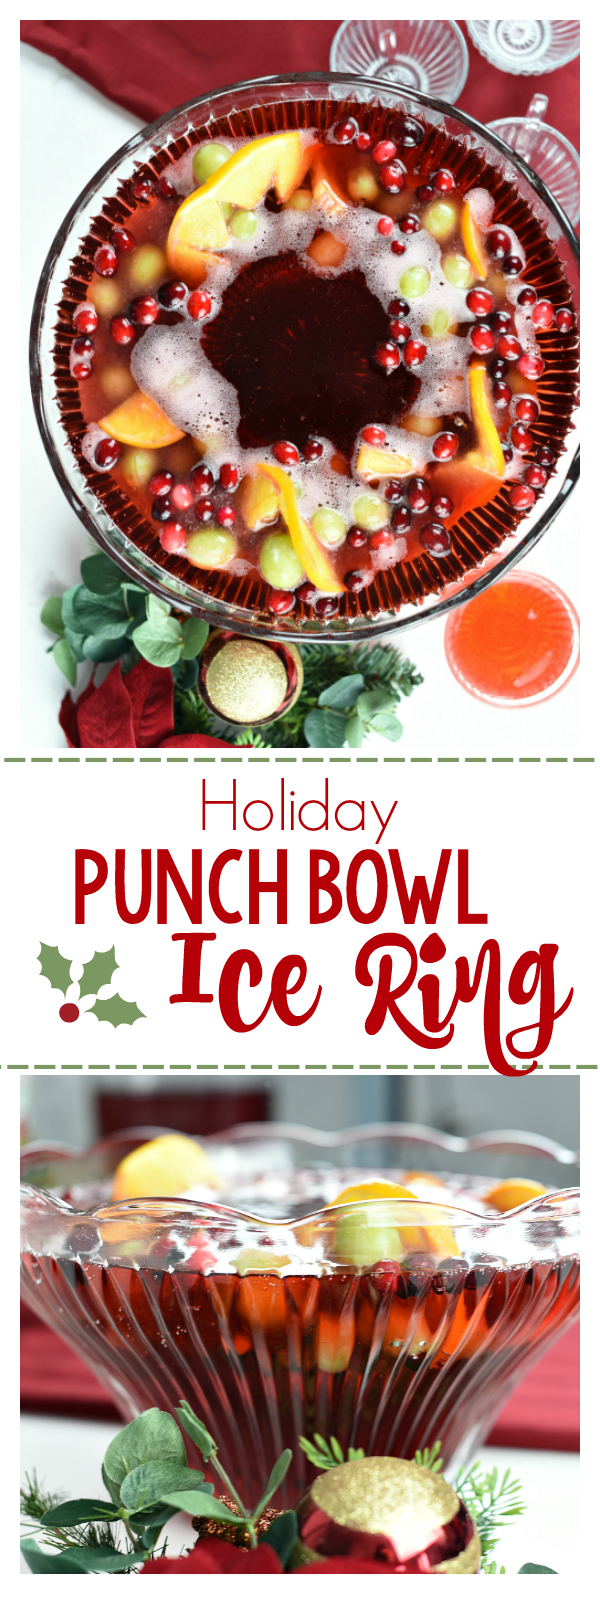 Punch Bowl Ice Ring-This Ice Ring Is Easy to Make and When You Add it to Your Holiday Punch Recipe it's PERFECT for Christmas, New Year's or any Holiday Parties